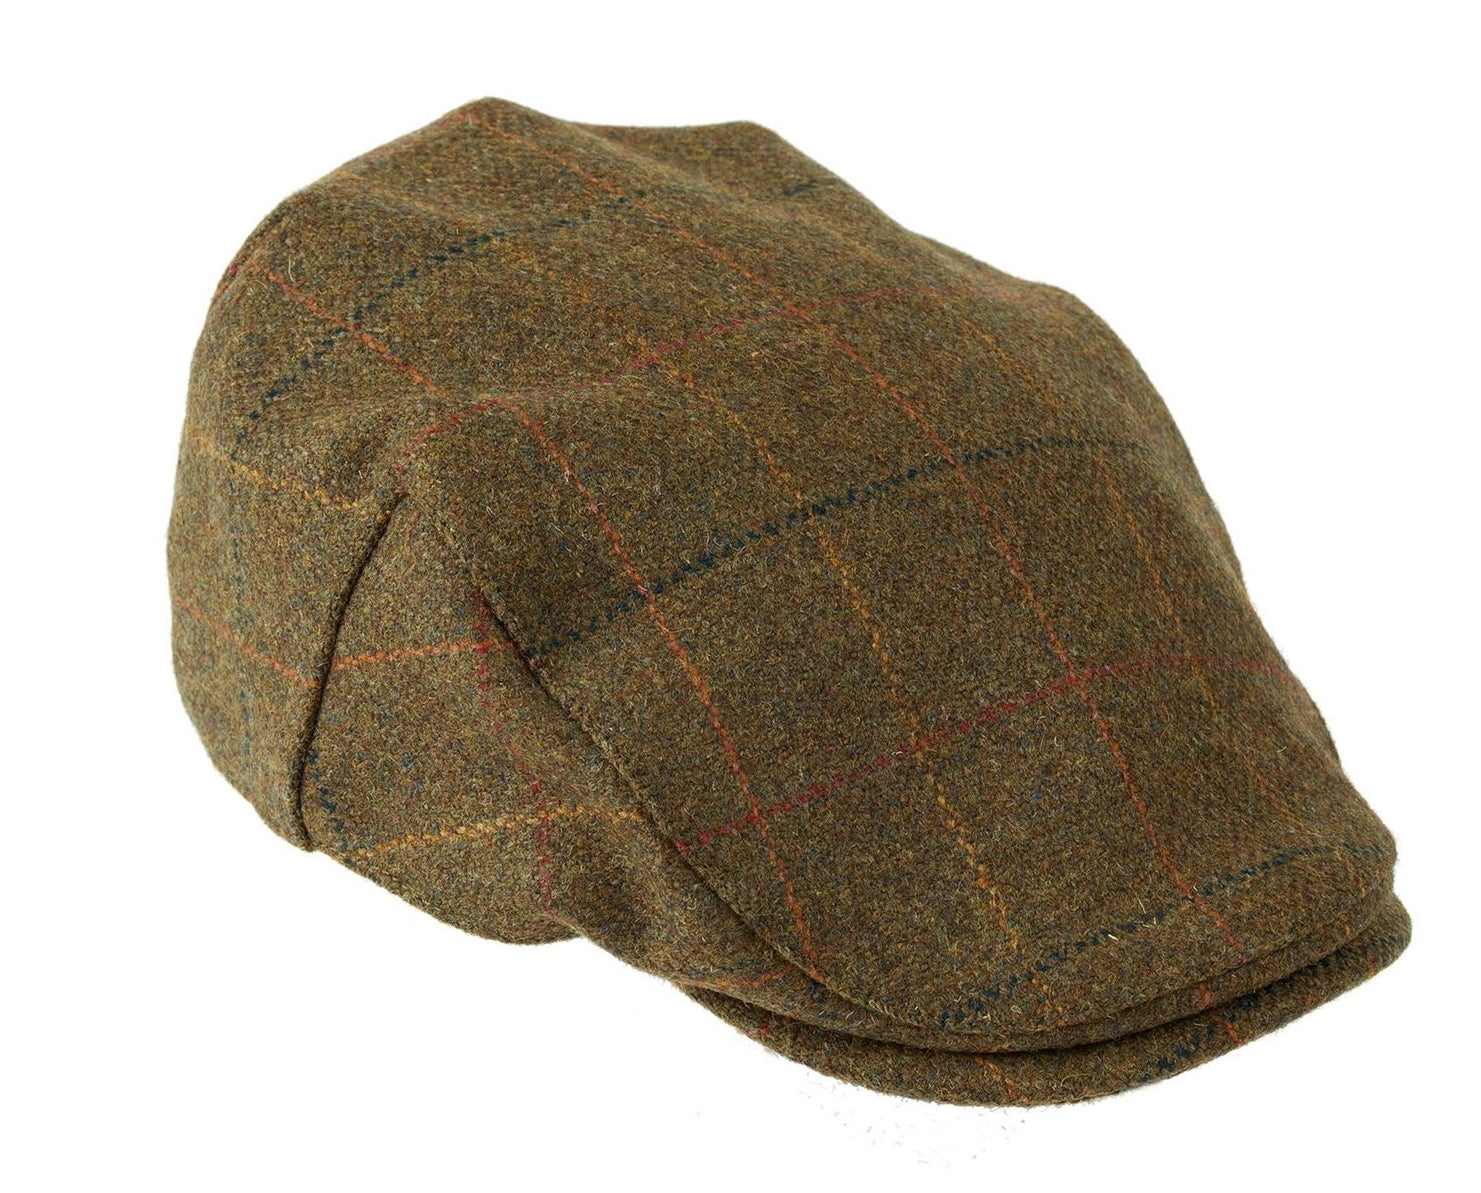 d9a3c9effd4 Shetland Wool Kinloch Waterproof Tweed Flat Cap in Brown with Check Pattern  by Heather Hats